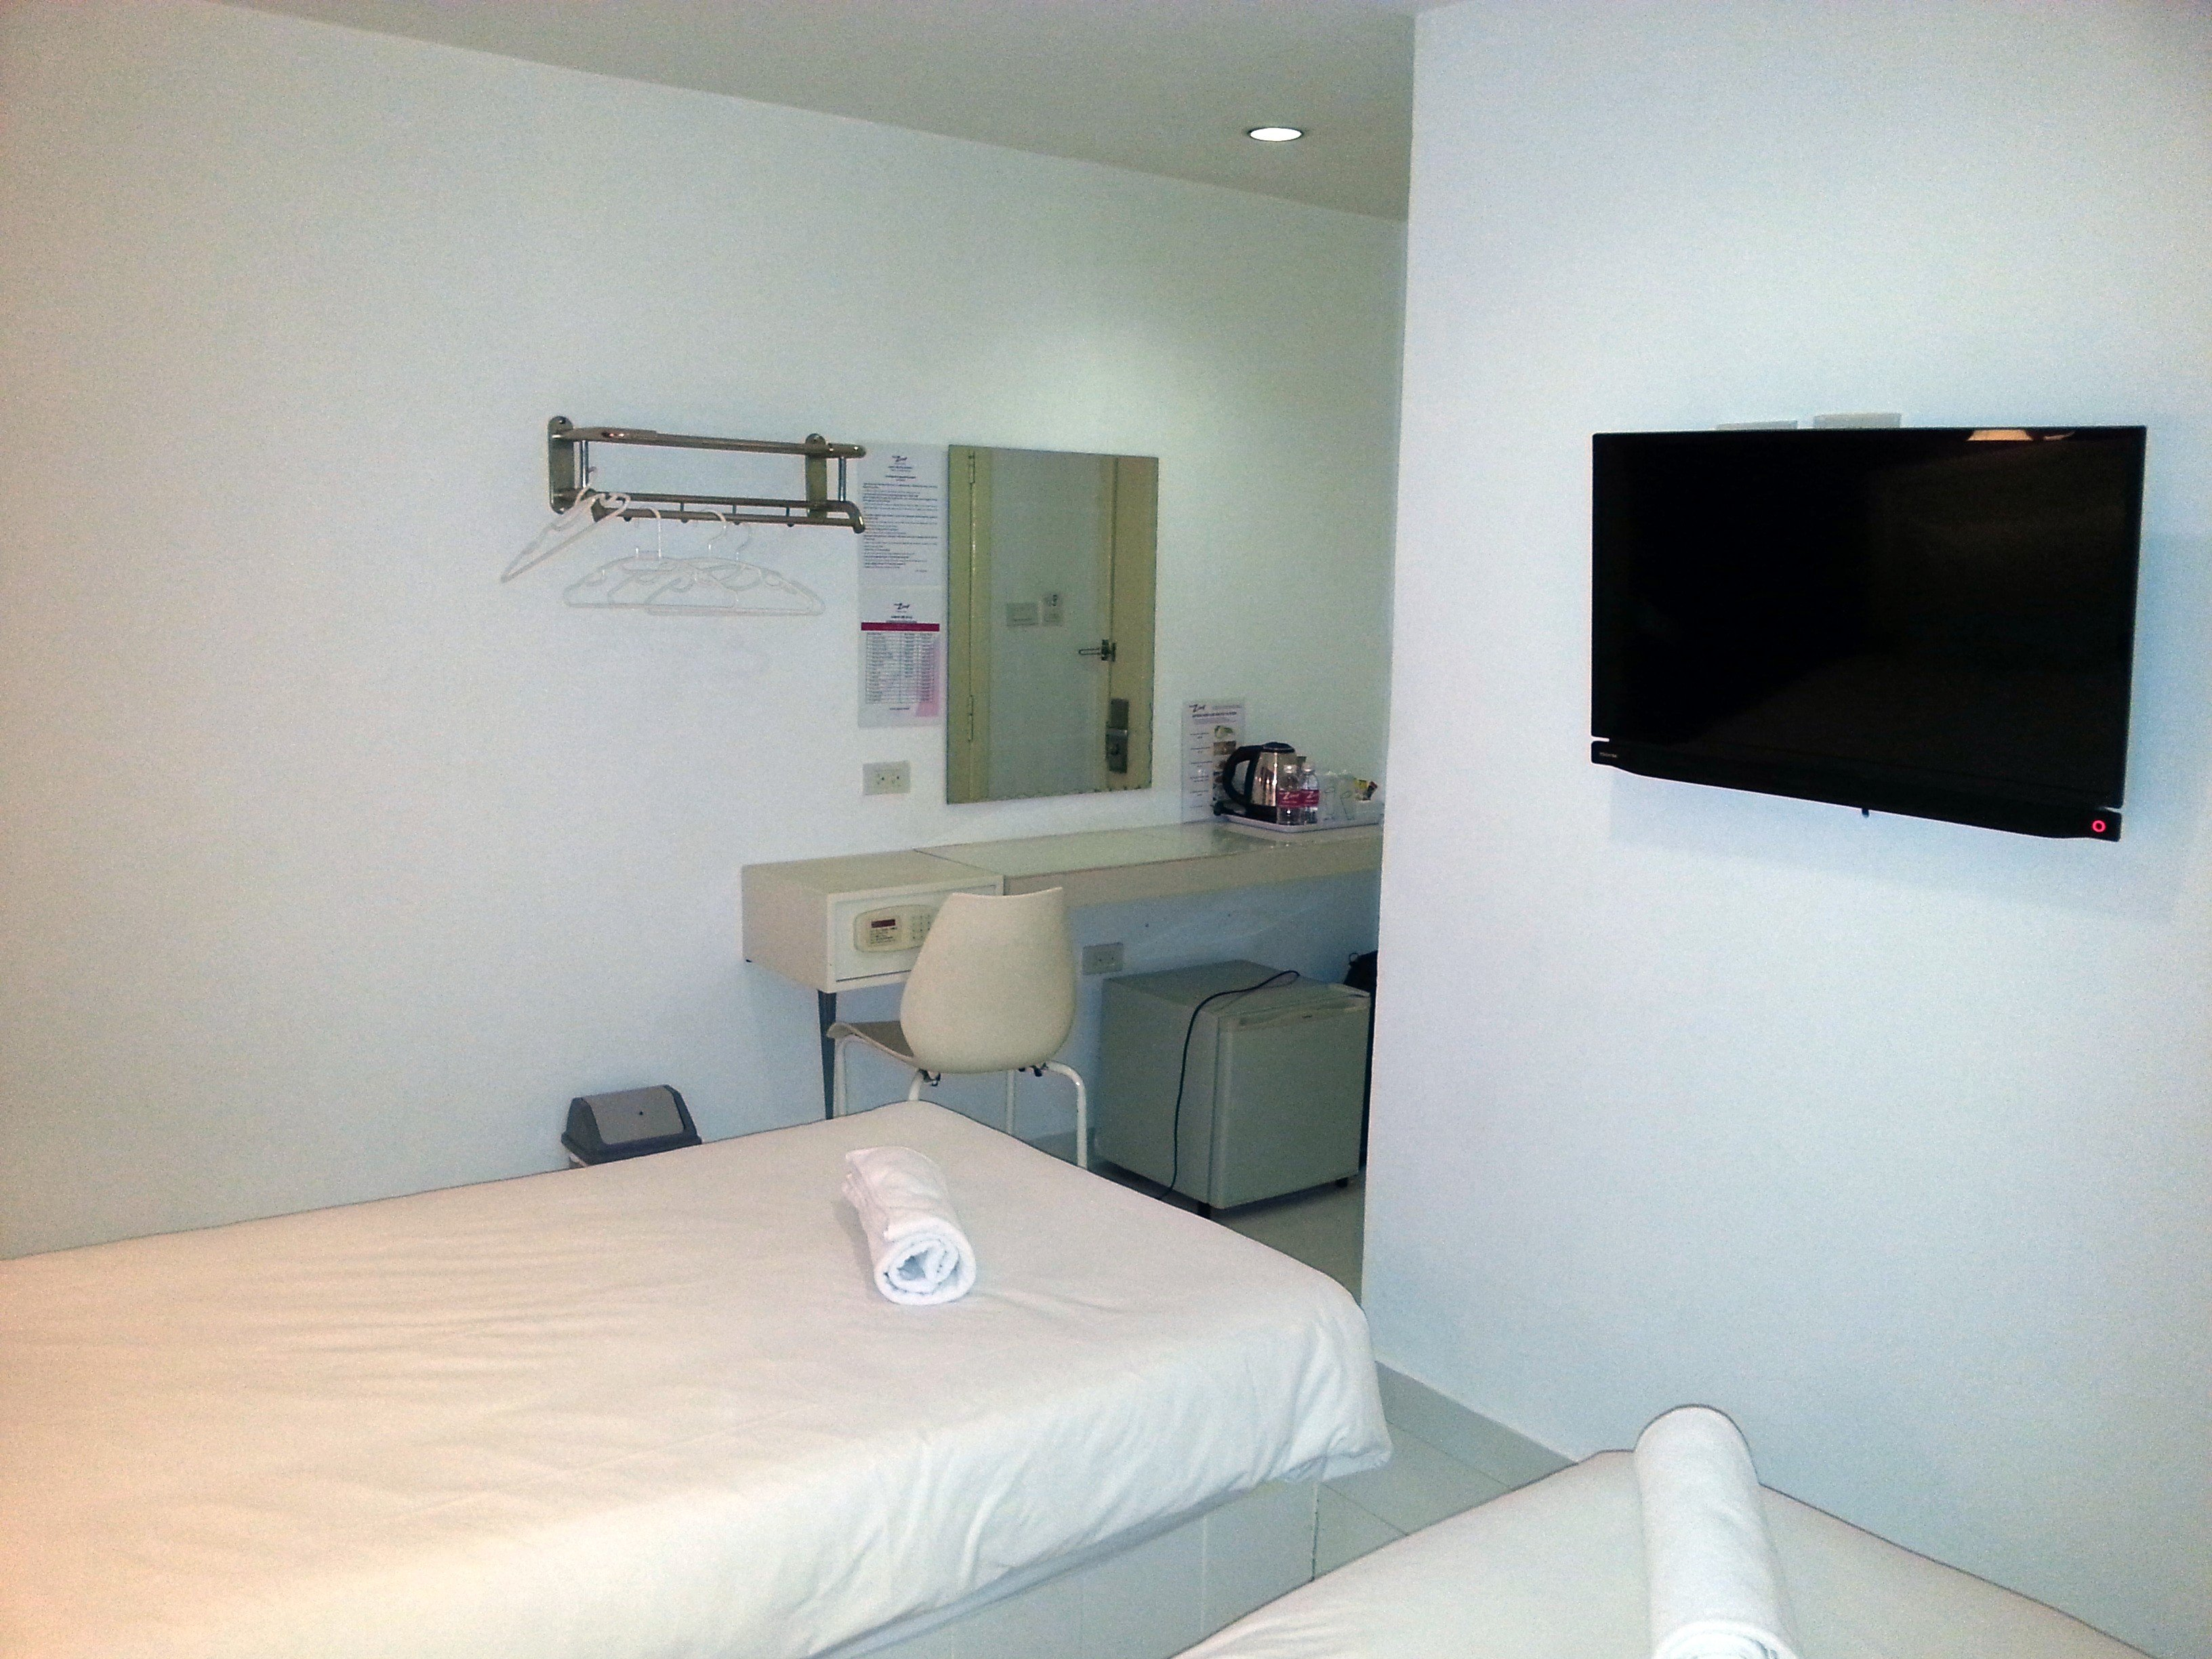 Room facilities at the Zing Hotel